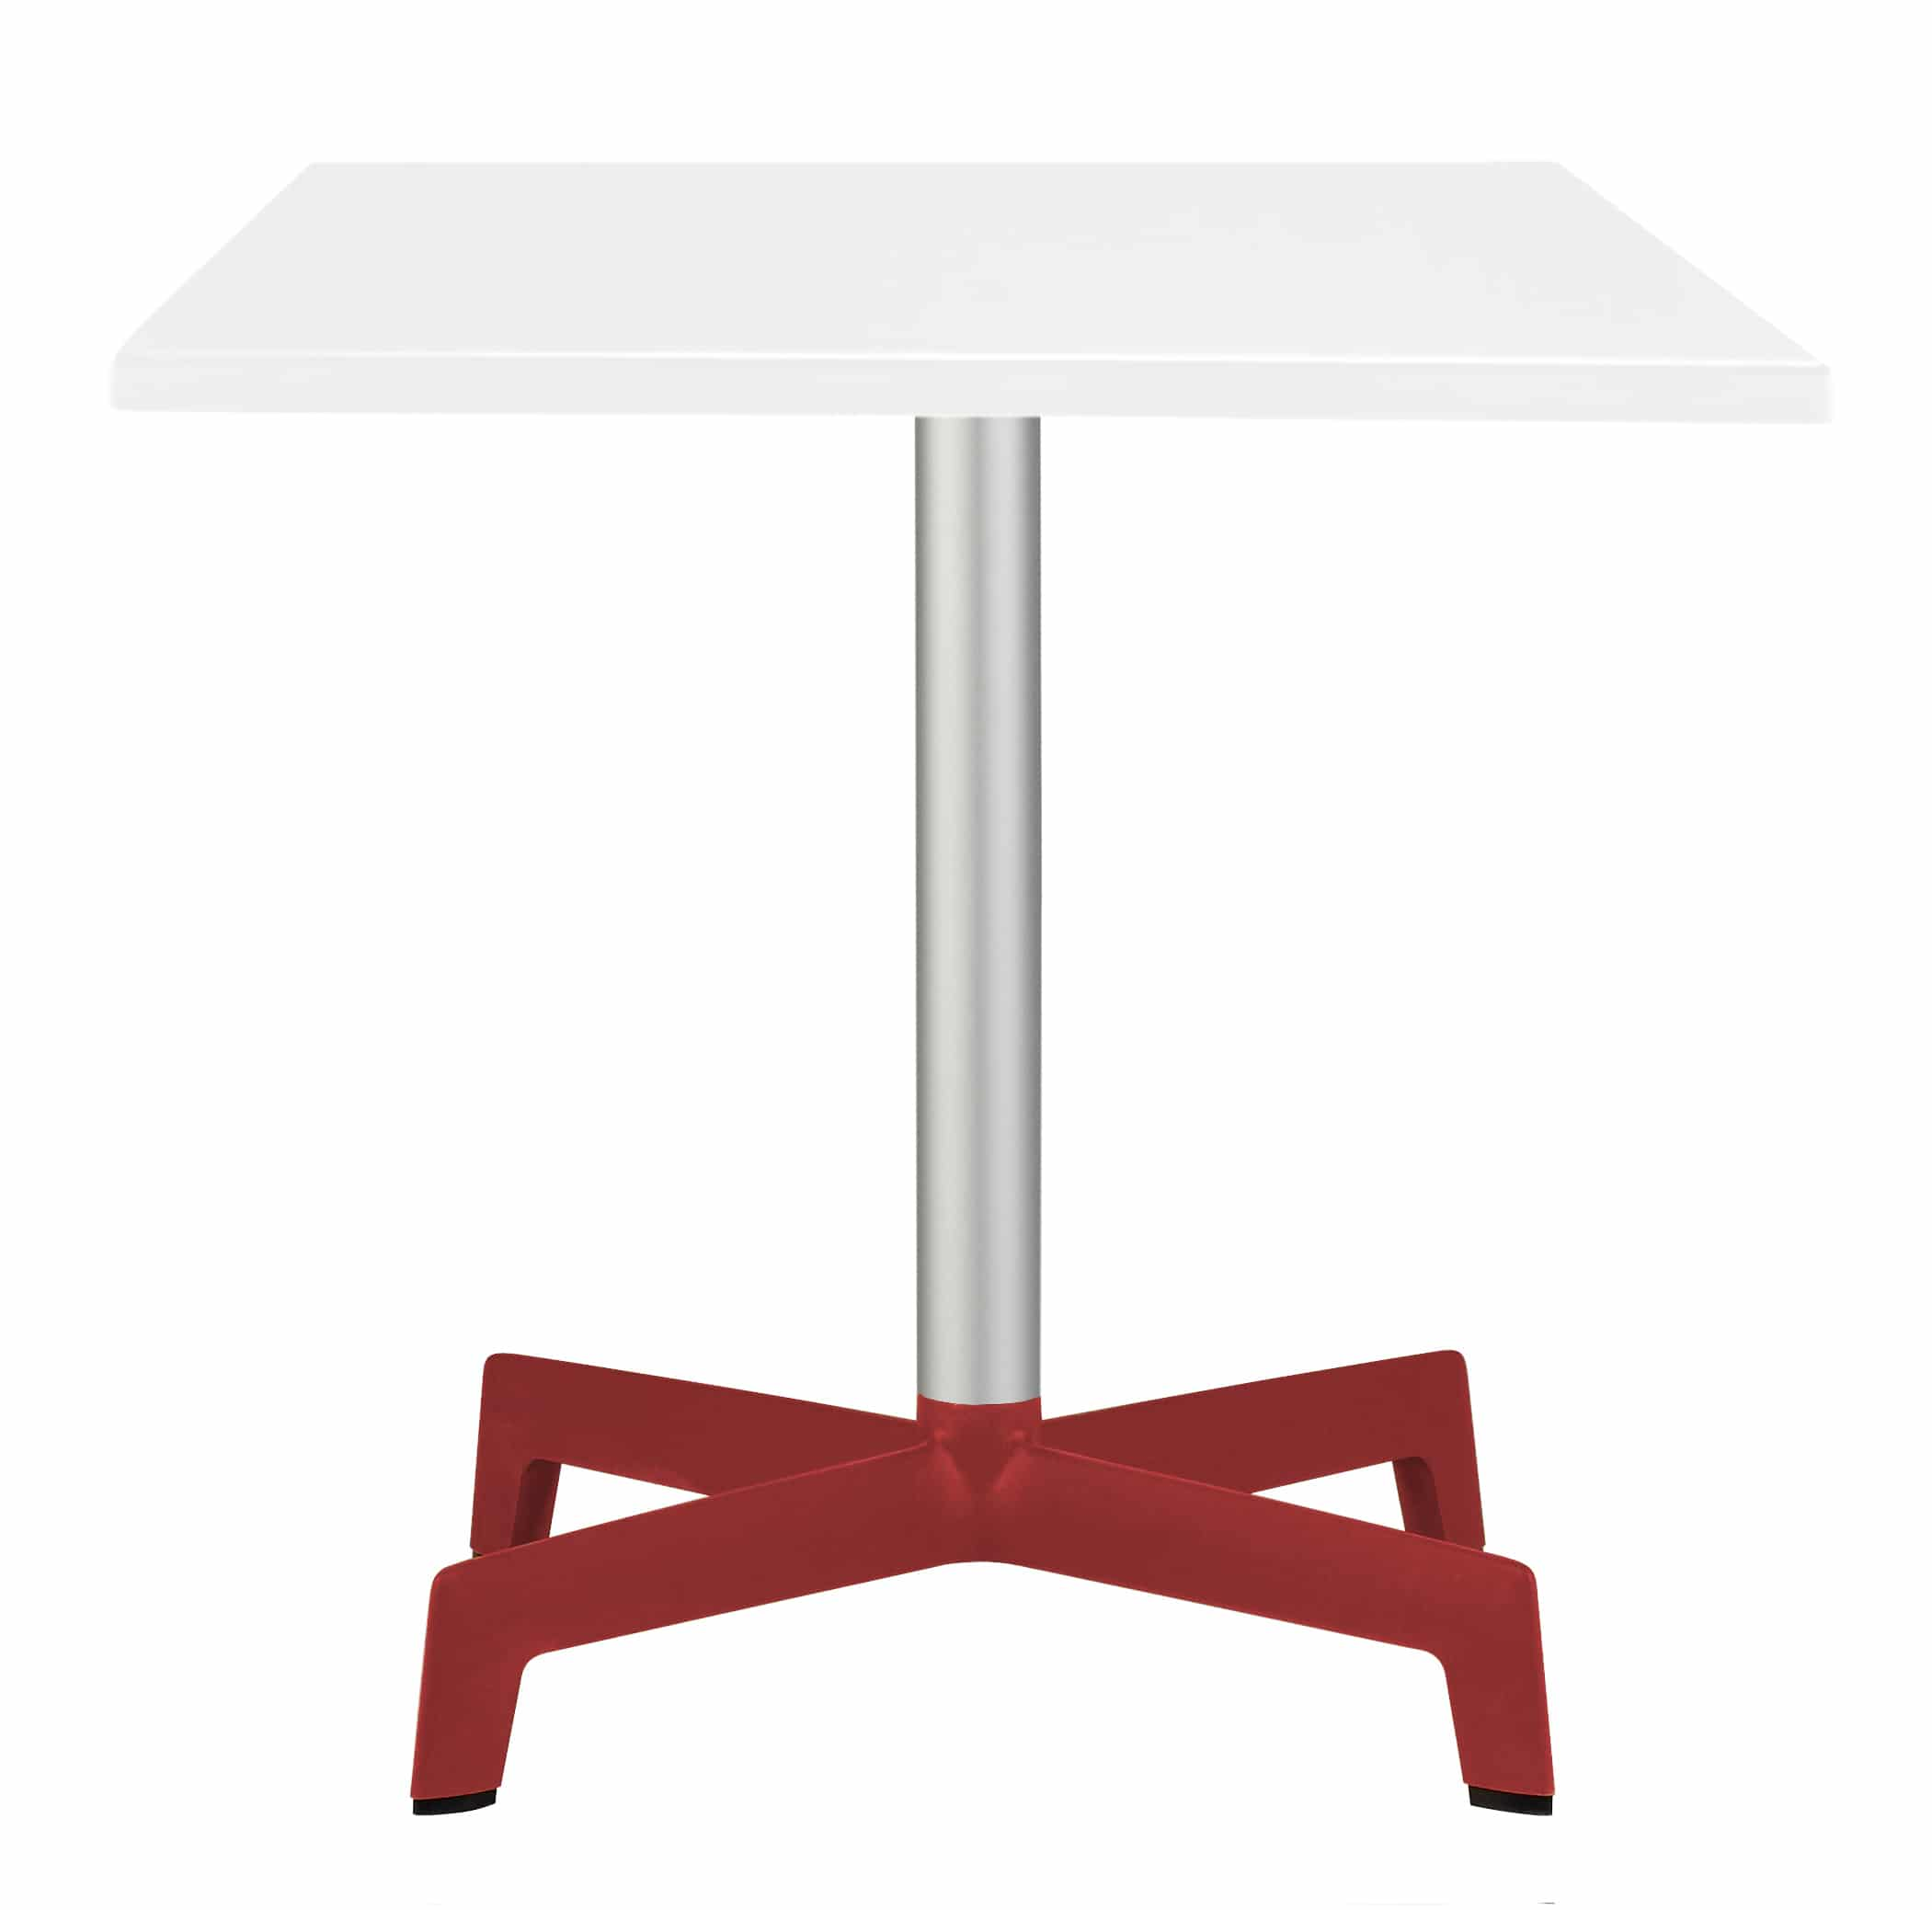 <p>Outdoor Furniture Contemporary Collection – Navarre Commercial Dining Table – Single Pedestal – Red Feet.</p> <p> </p> <p>Table for indoor and outdoor use. Combine with tabletop and chairs of your choice.</p> <p> </p> <p>Adaptable to any environment being designed by architects. Capturing essential features such as elegance lightness, functionality, ergonomics and care for the environment.</p>